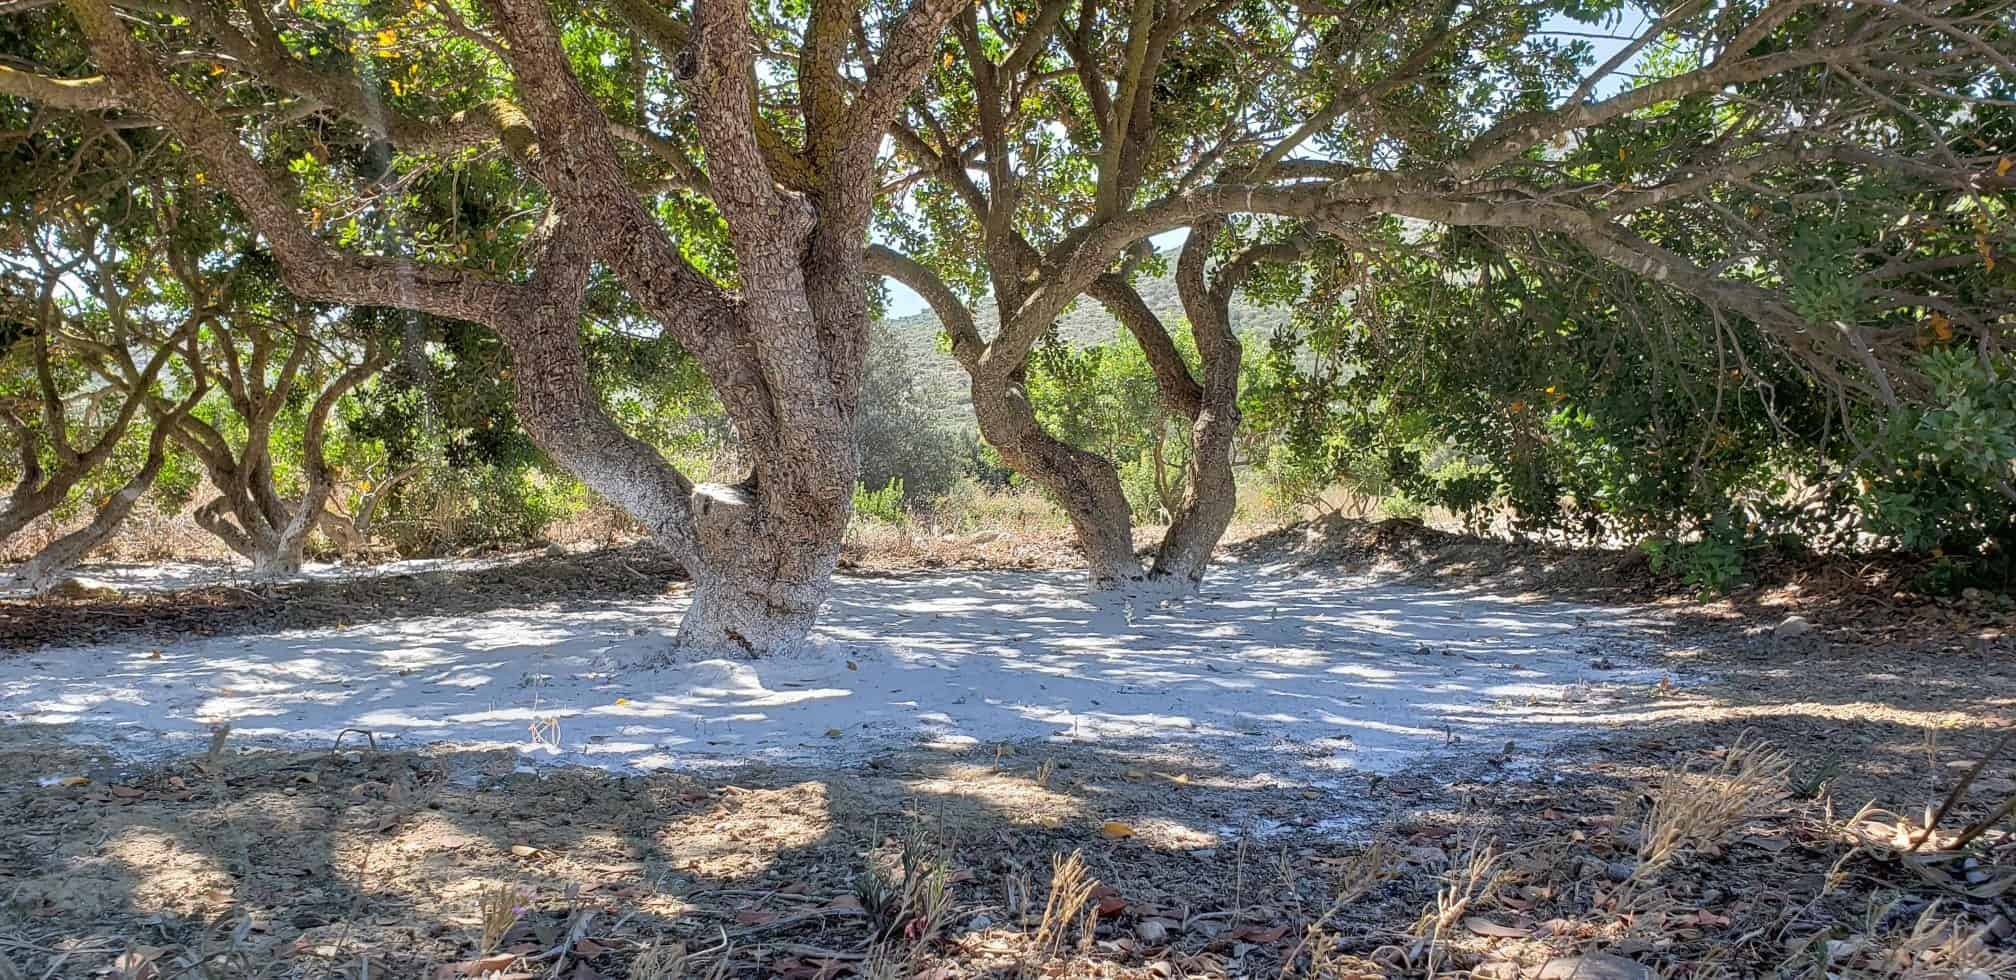 Chios - mastiha trees and roots with thick white powder that protects them from dirt and diseases